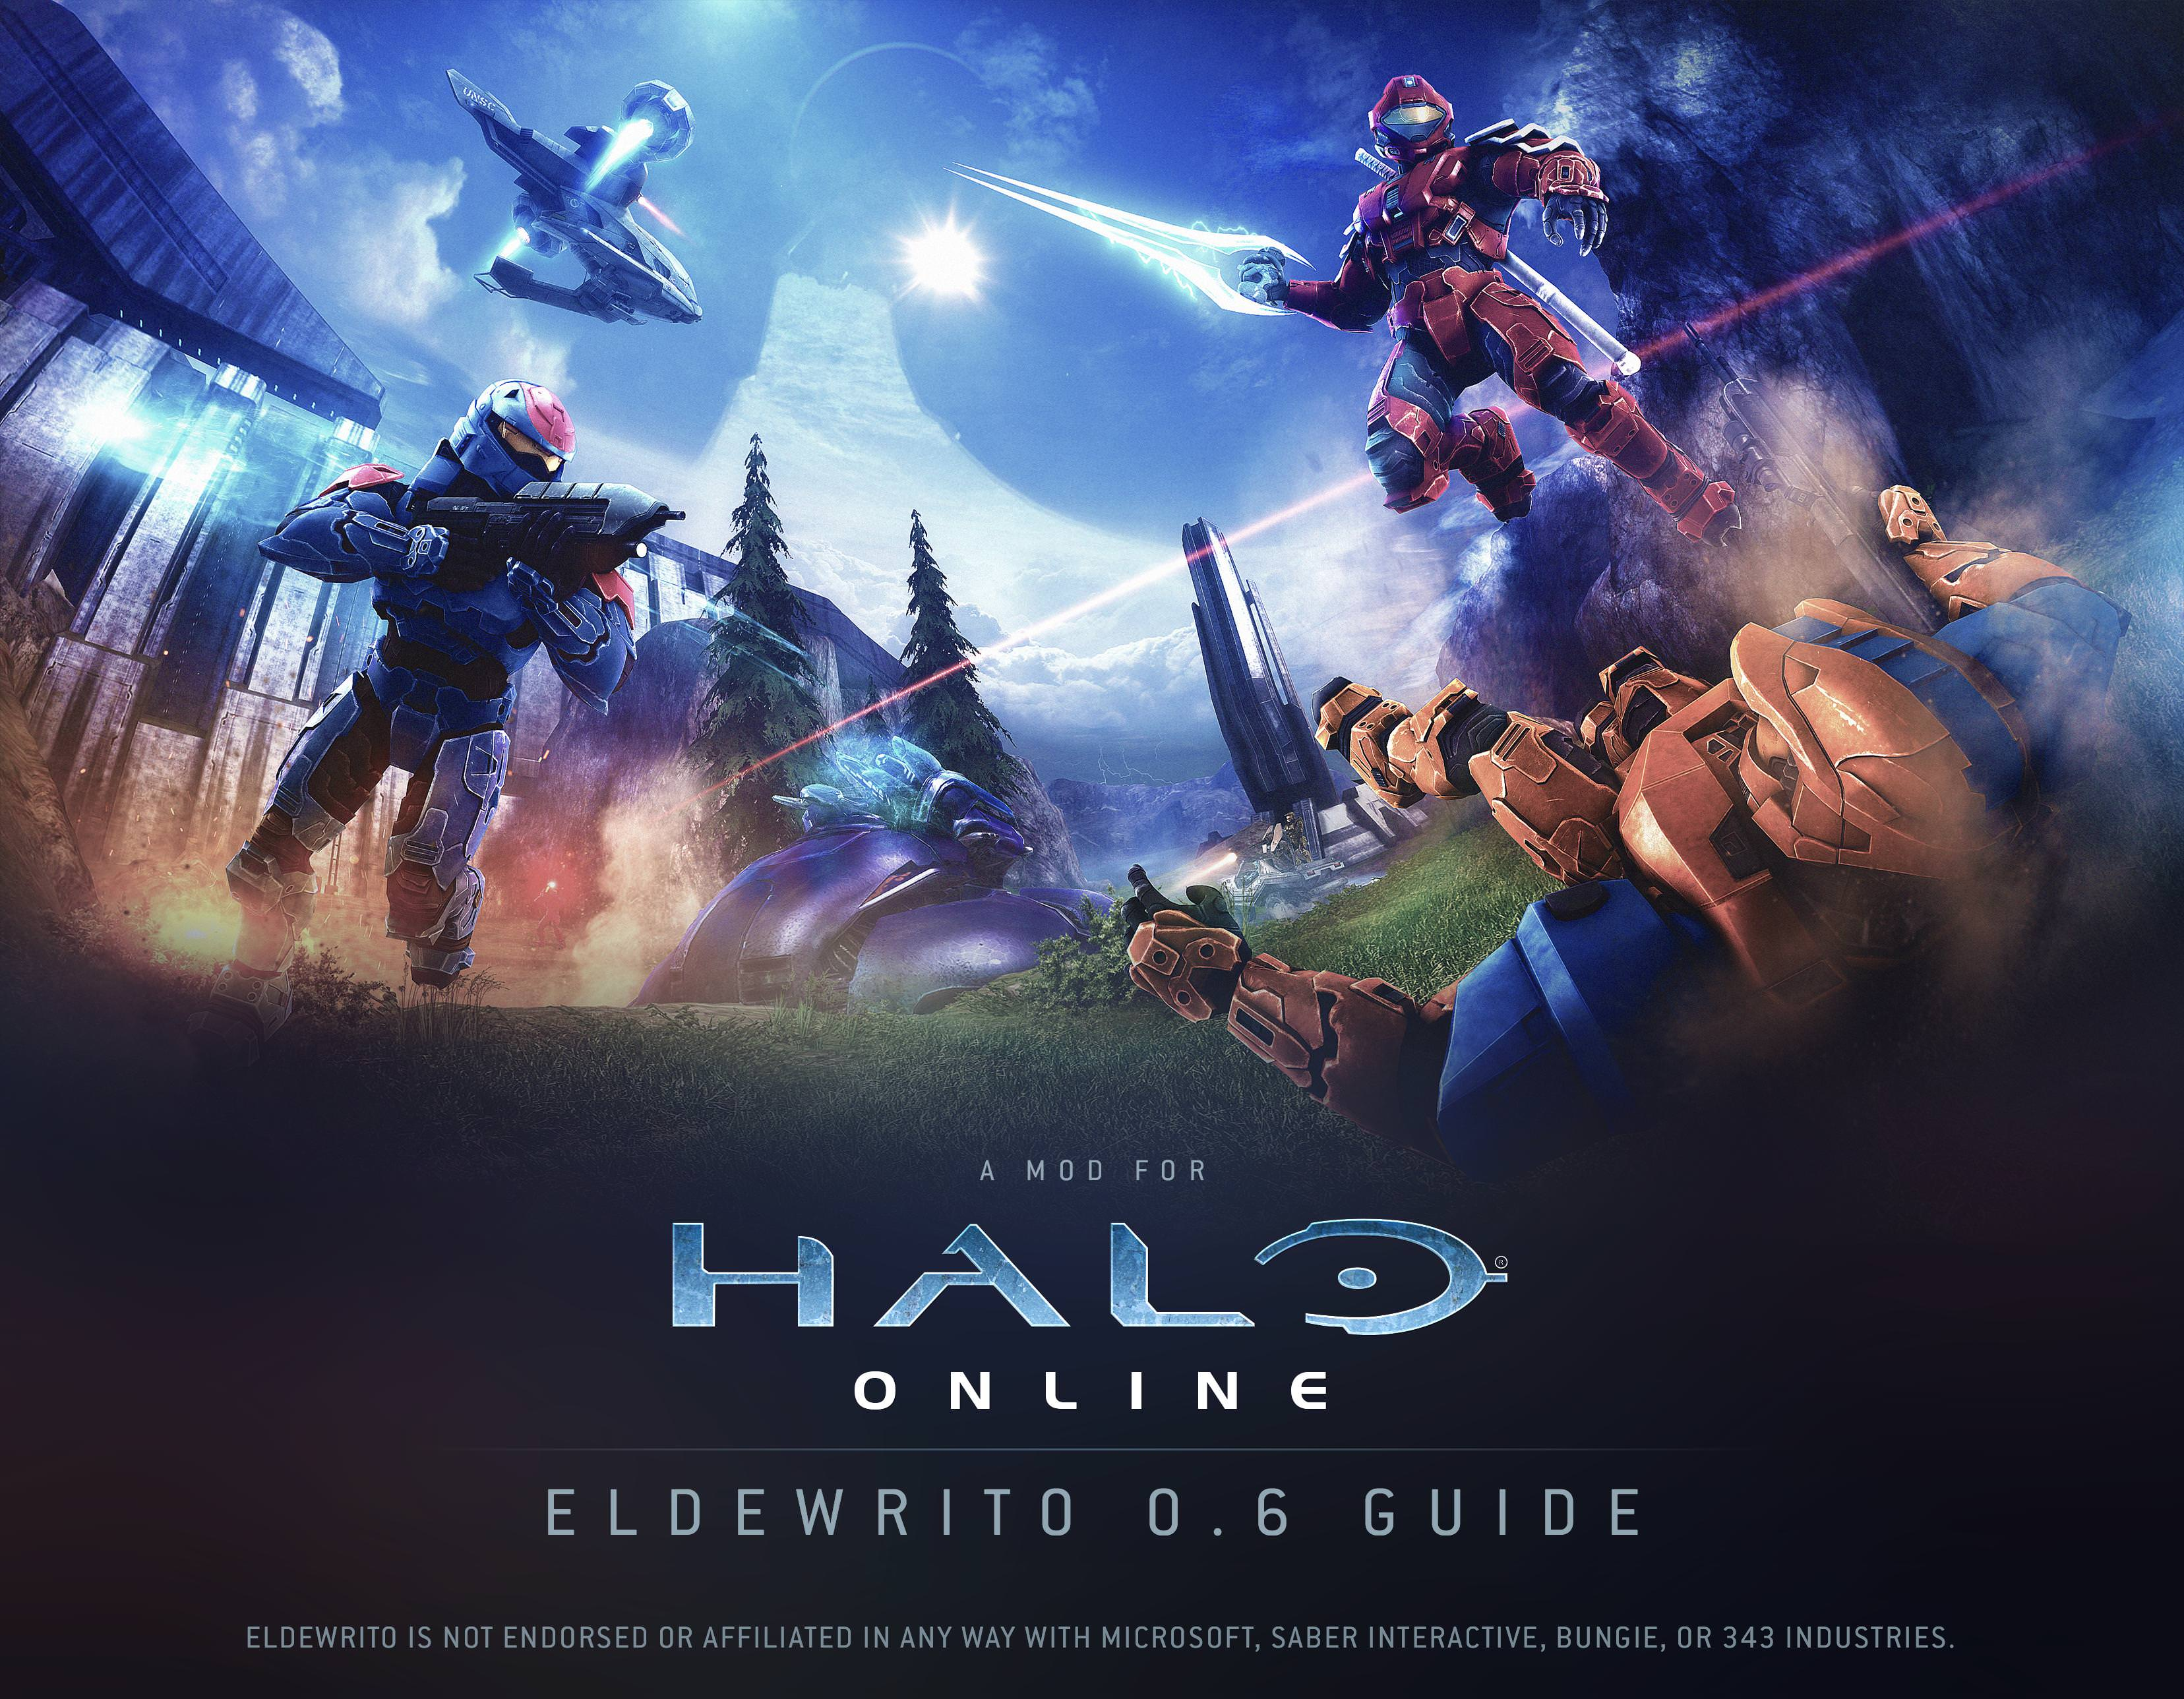 Halo online discord | Project Cartographer  2019-05-09